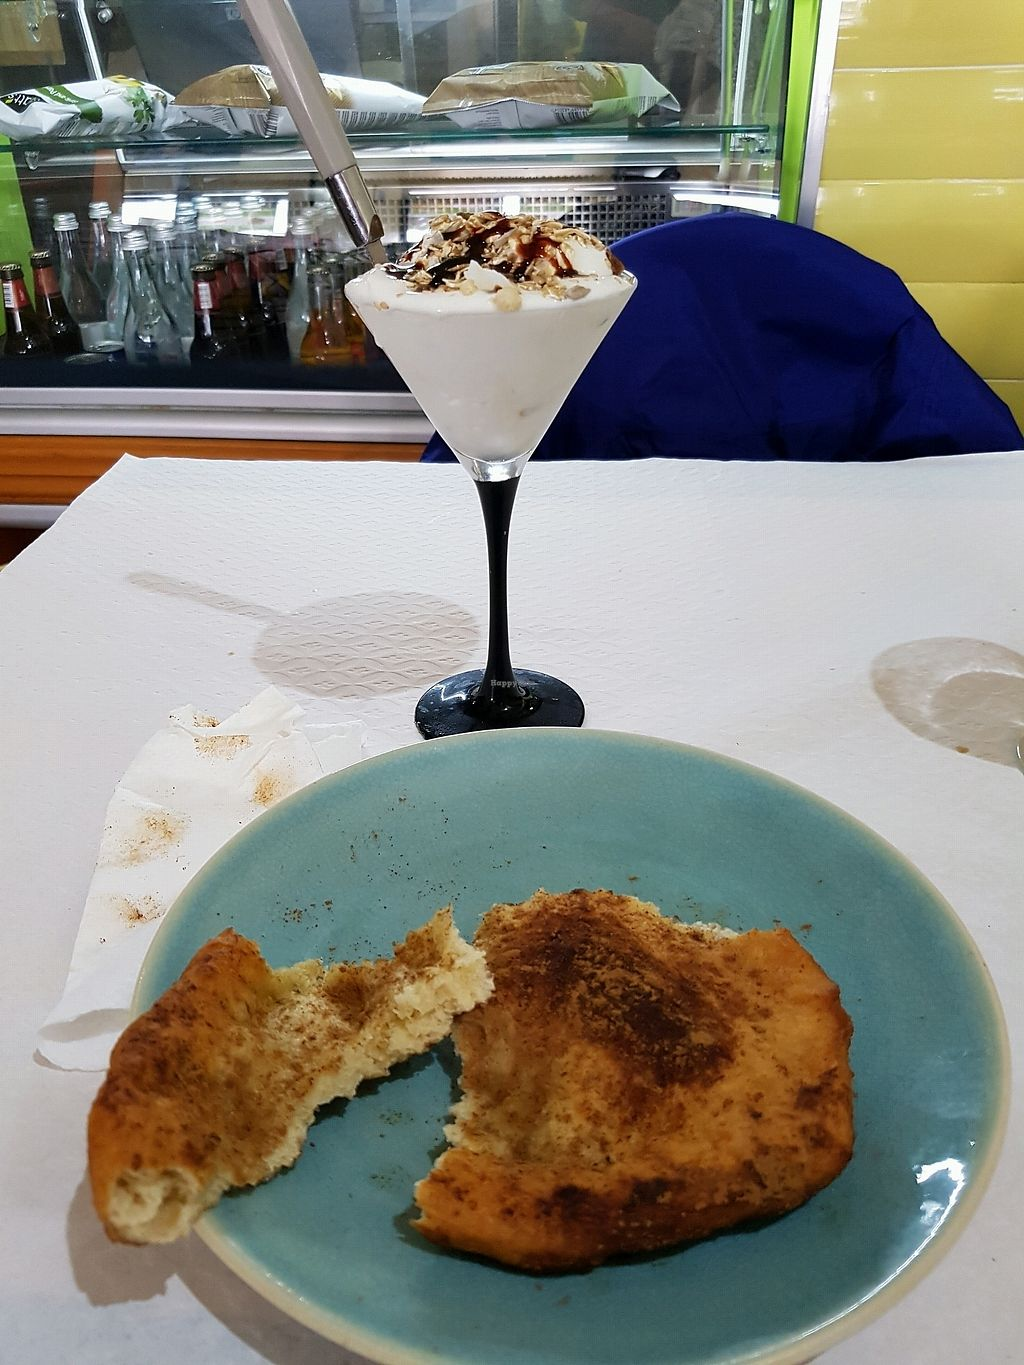 """Photo of Happy Veggies  by <a href=""""/members/profile/Rachaelm"""">Rachaelm</a> <br/>homemade ice cream <br/> February 15, 2018  - <a href='/contact/abuse/image/102031/359591'>Report</a>"""